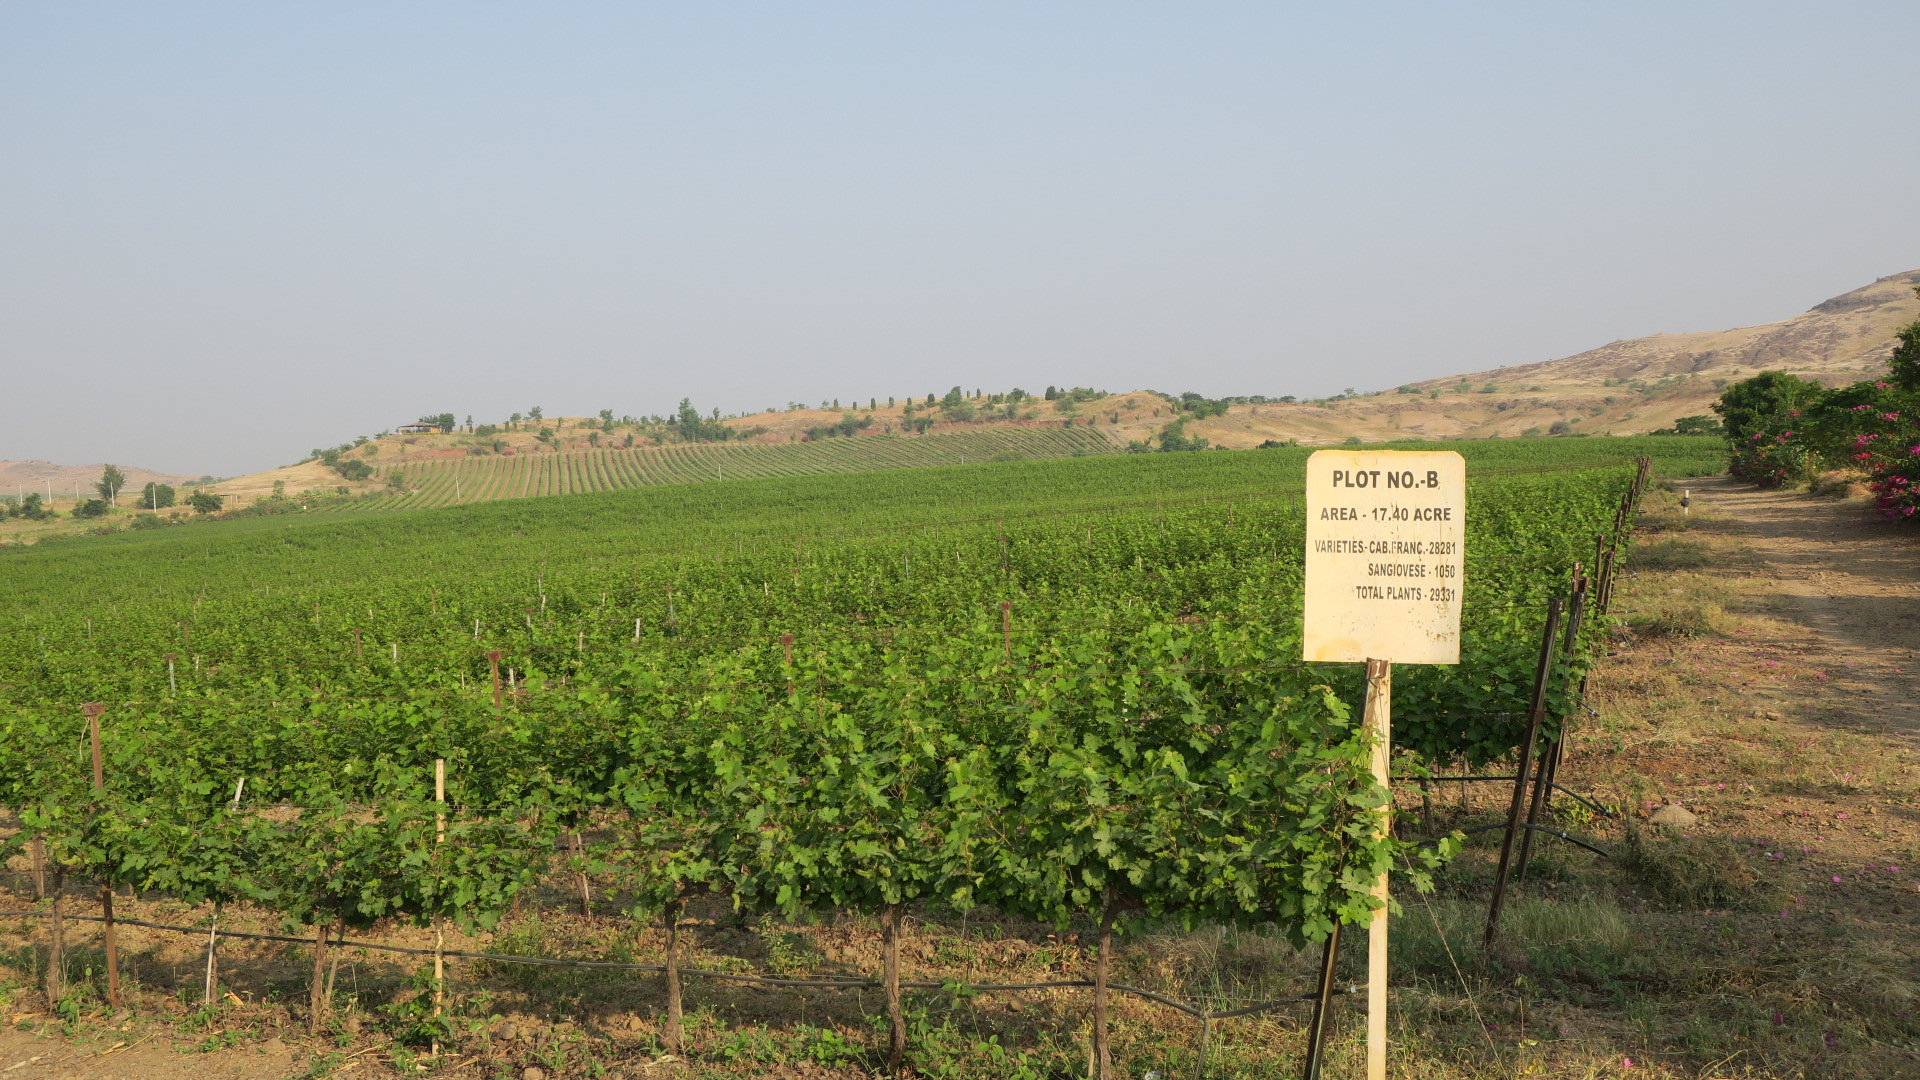 Garwad's Sangiovese and Cabernet Franc vines welcoming us as we enter the estate (Photo credit: Sumi Sarma)